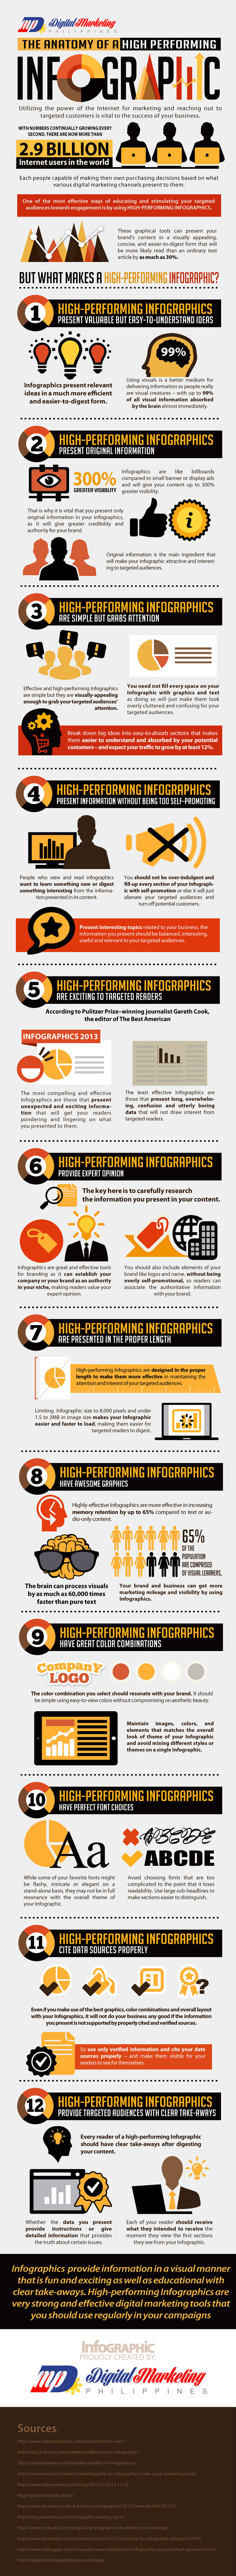 The-Anatomy-of-a-High-Performing-Infographic-plaza